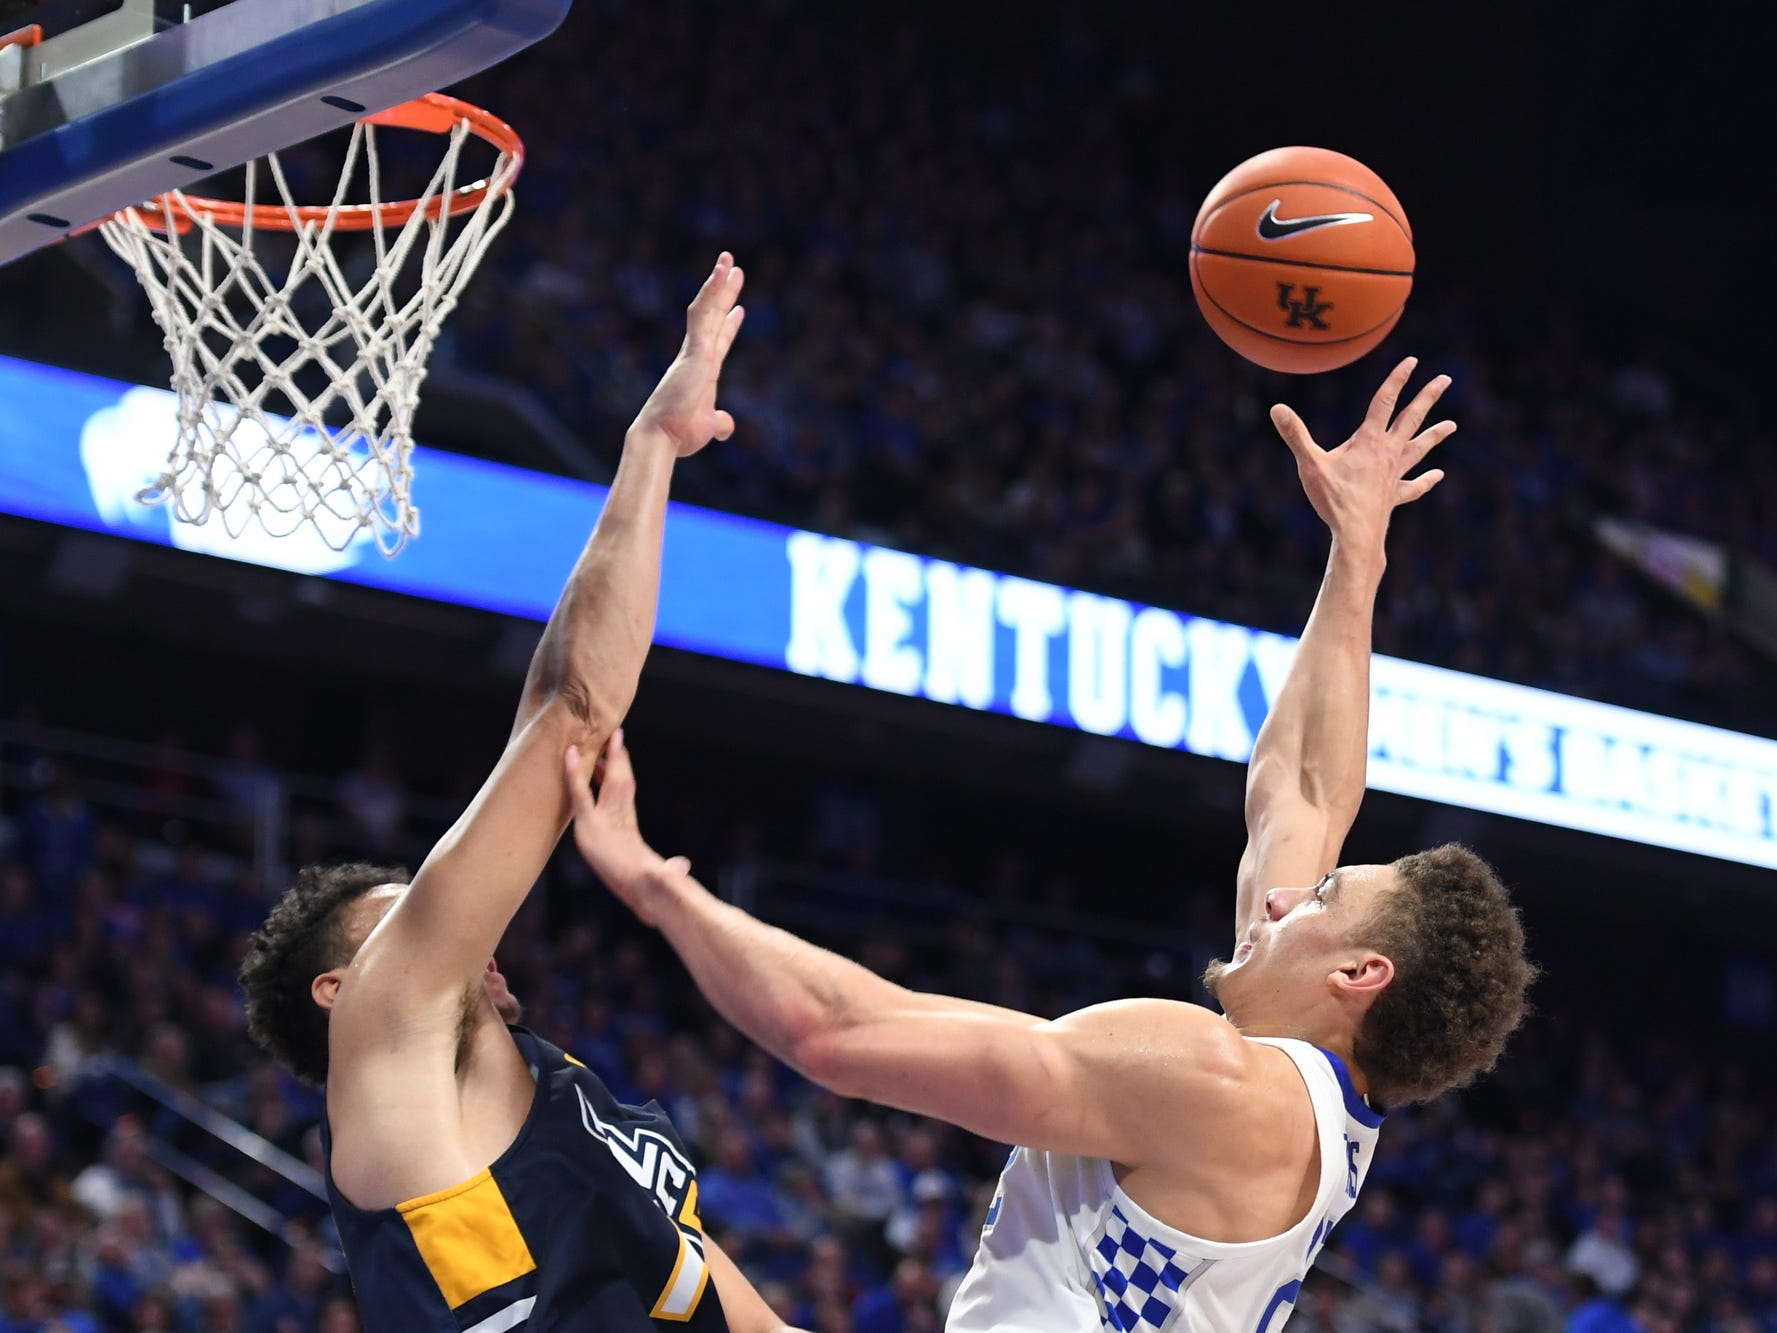 UK F Reid Travis puts up the ball during the University of Kentucky men's basketball game against UNC Greensboro at Rupp Arena in Lexington, Kentucky on Saturday, December 1, 2018.